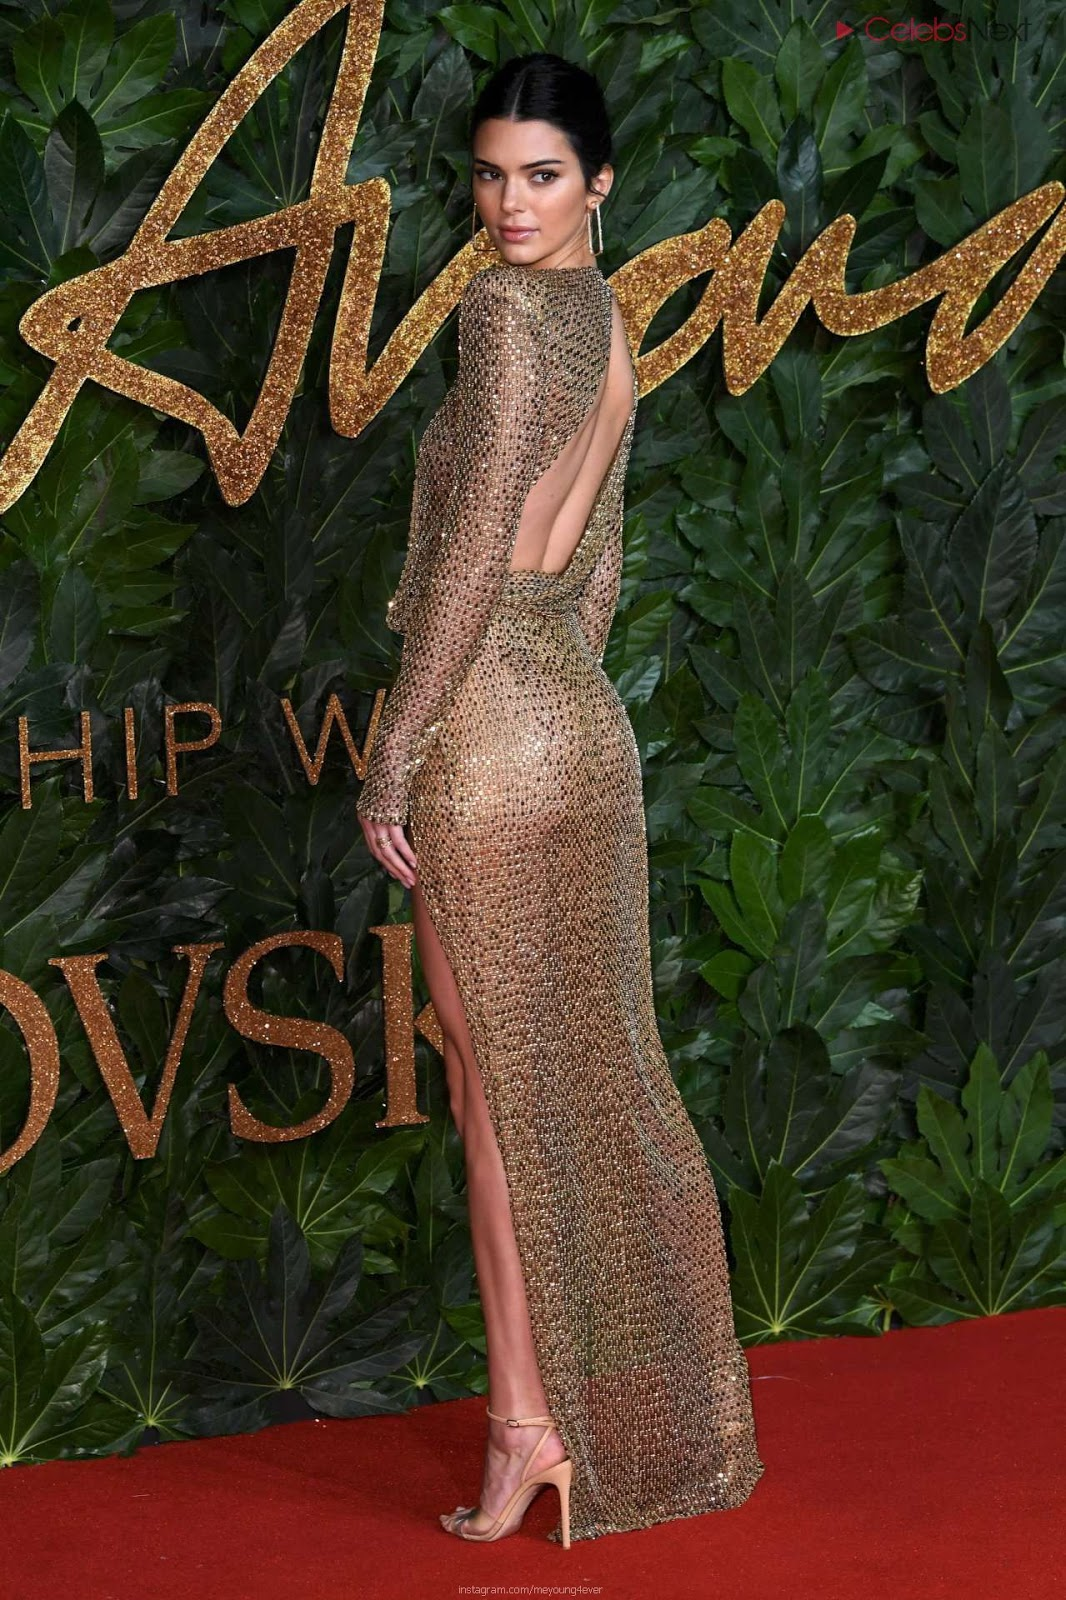 Kendall Jenner Nude At British Fashion Show 2018 WOW sexy ass hot small boobs slim figure CEleBrityBooty.co Exclusive